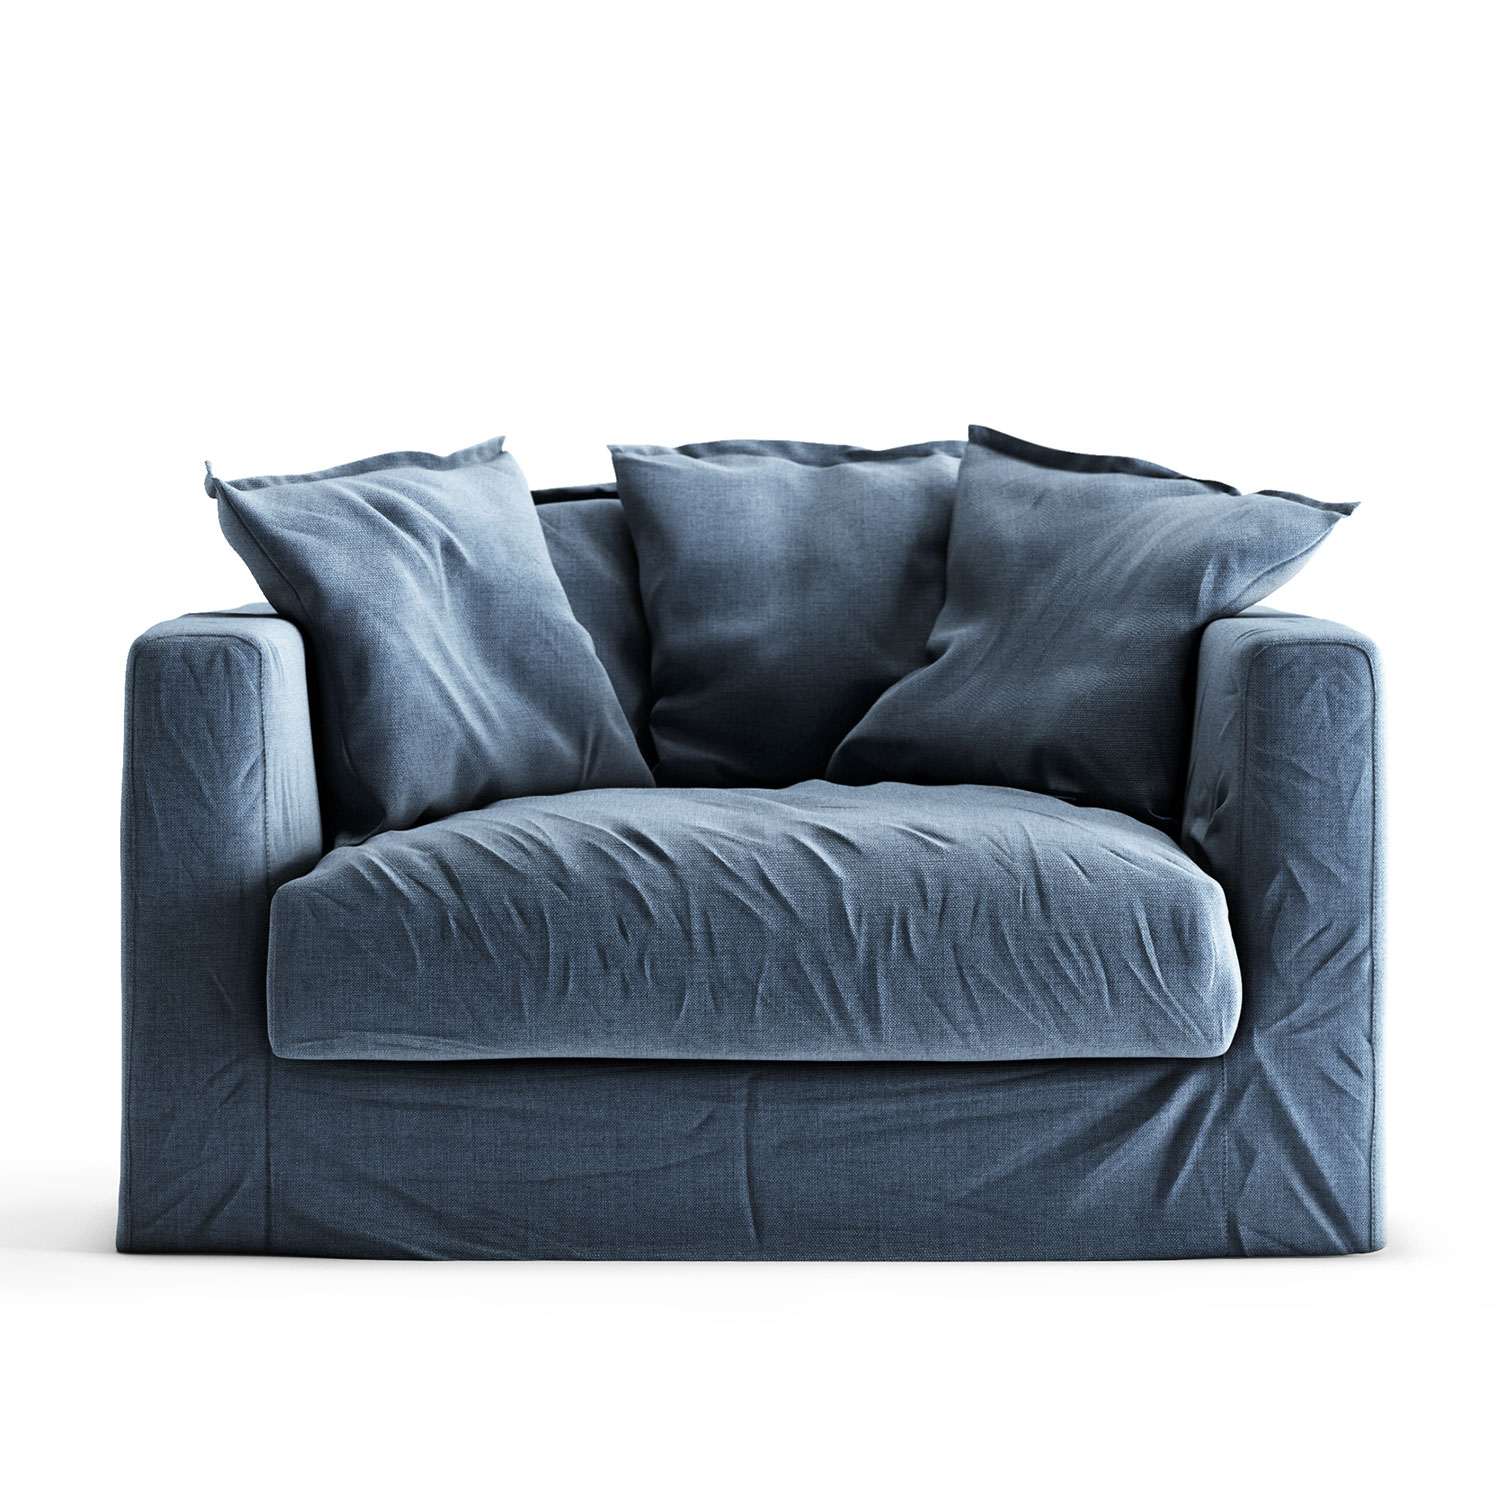 Le Grand Air Loveseat verhoilu, Feeling Blue